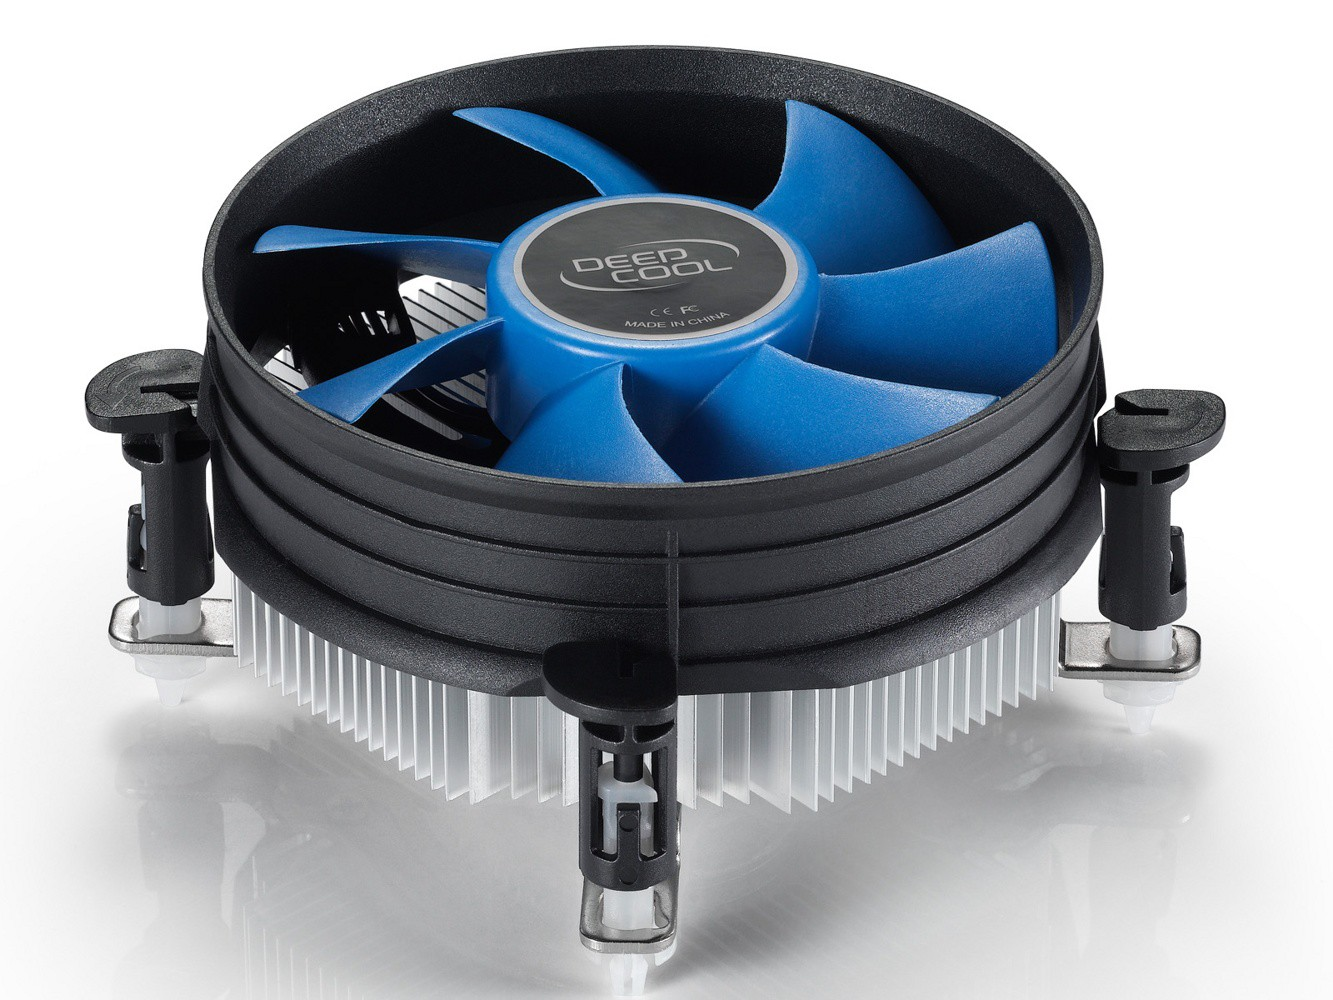 Вентилятор Deepcool Theta 9 PWM (1100~3200rpm, 57.97CFM, 17.8~44.6dB(A), 4-pin, 95W) (Socket 1150/1151)